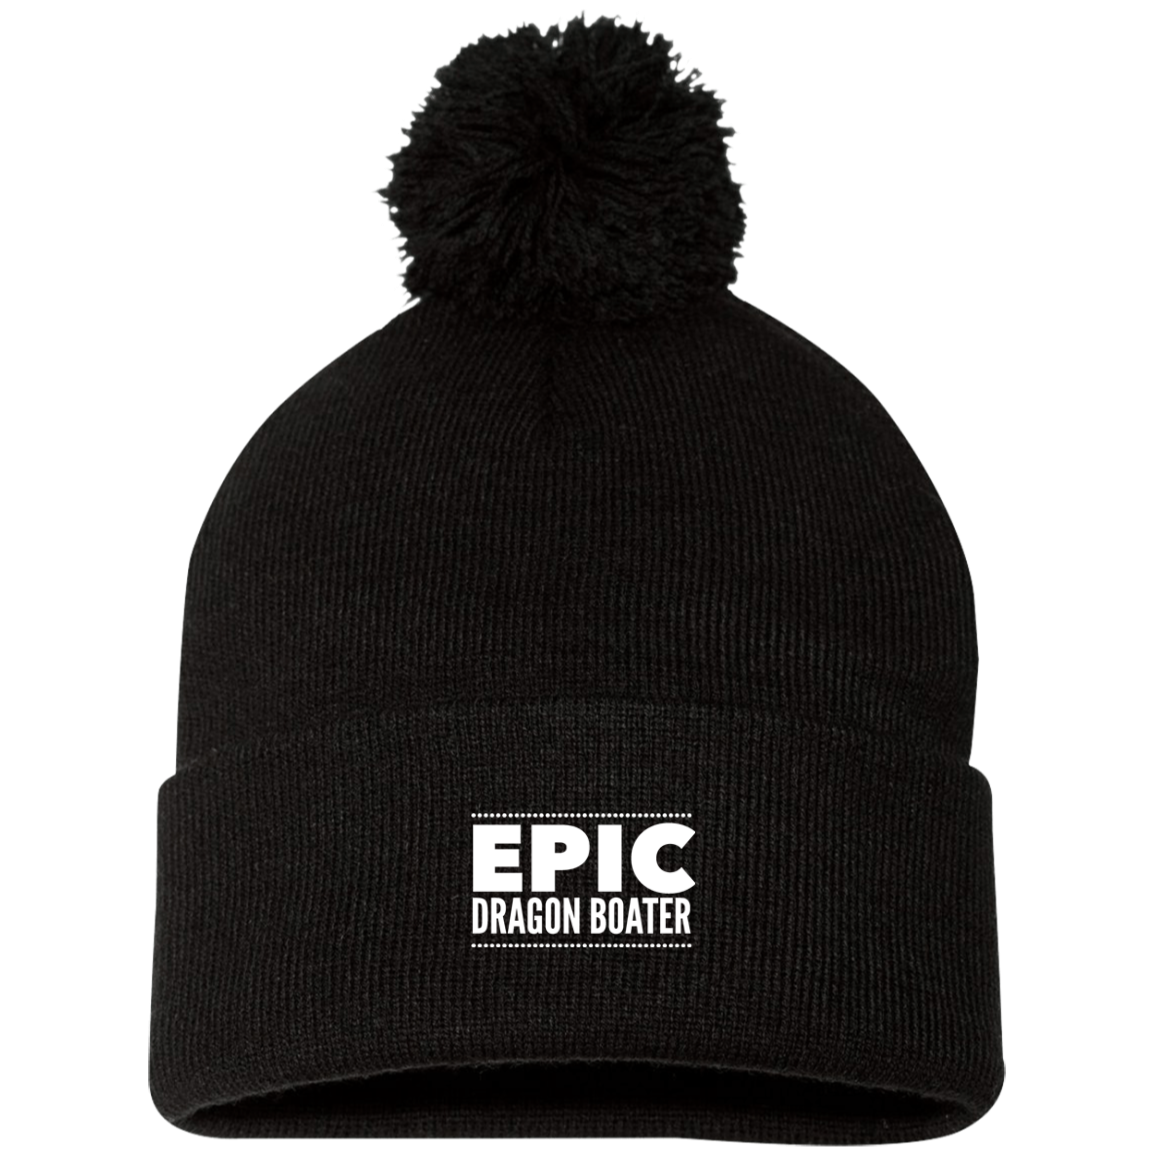 Epic Dragon Boater Sportsman Pom Pom Knit Cap